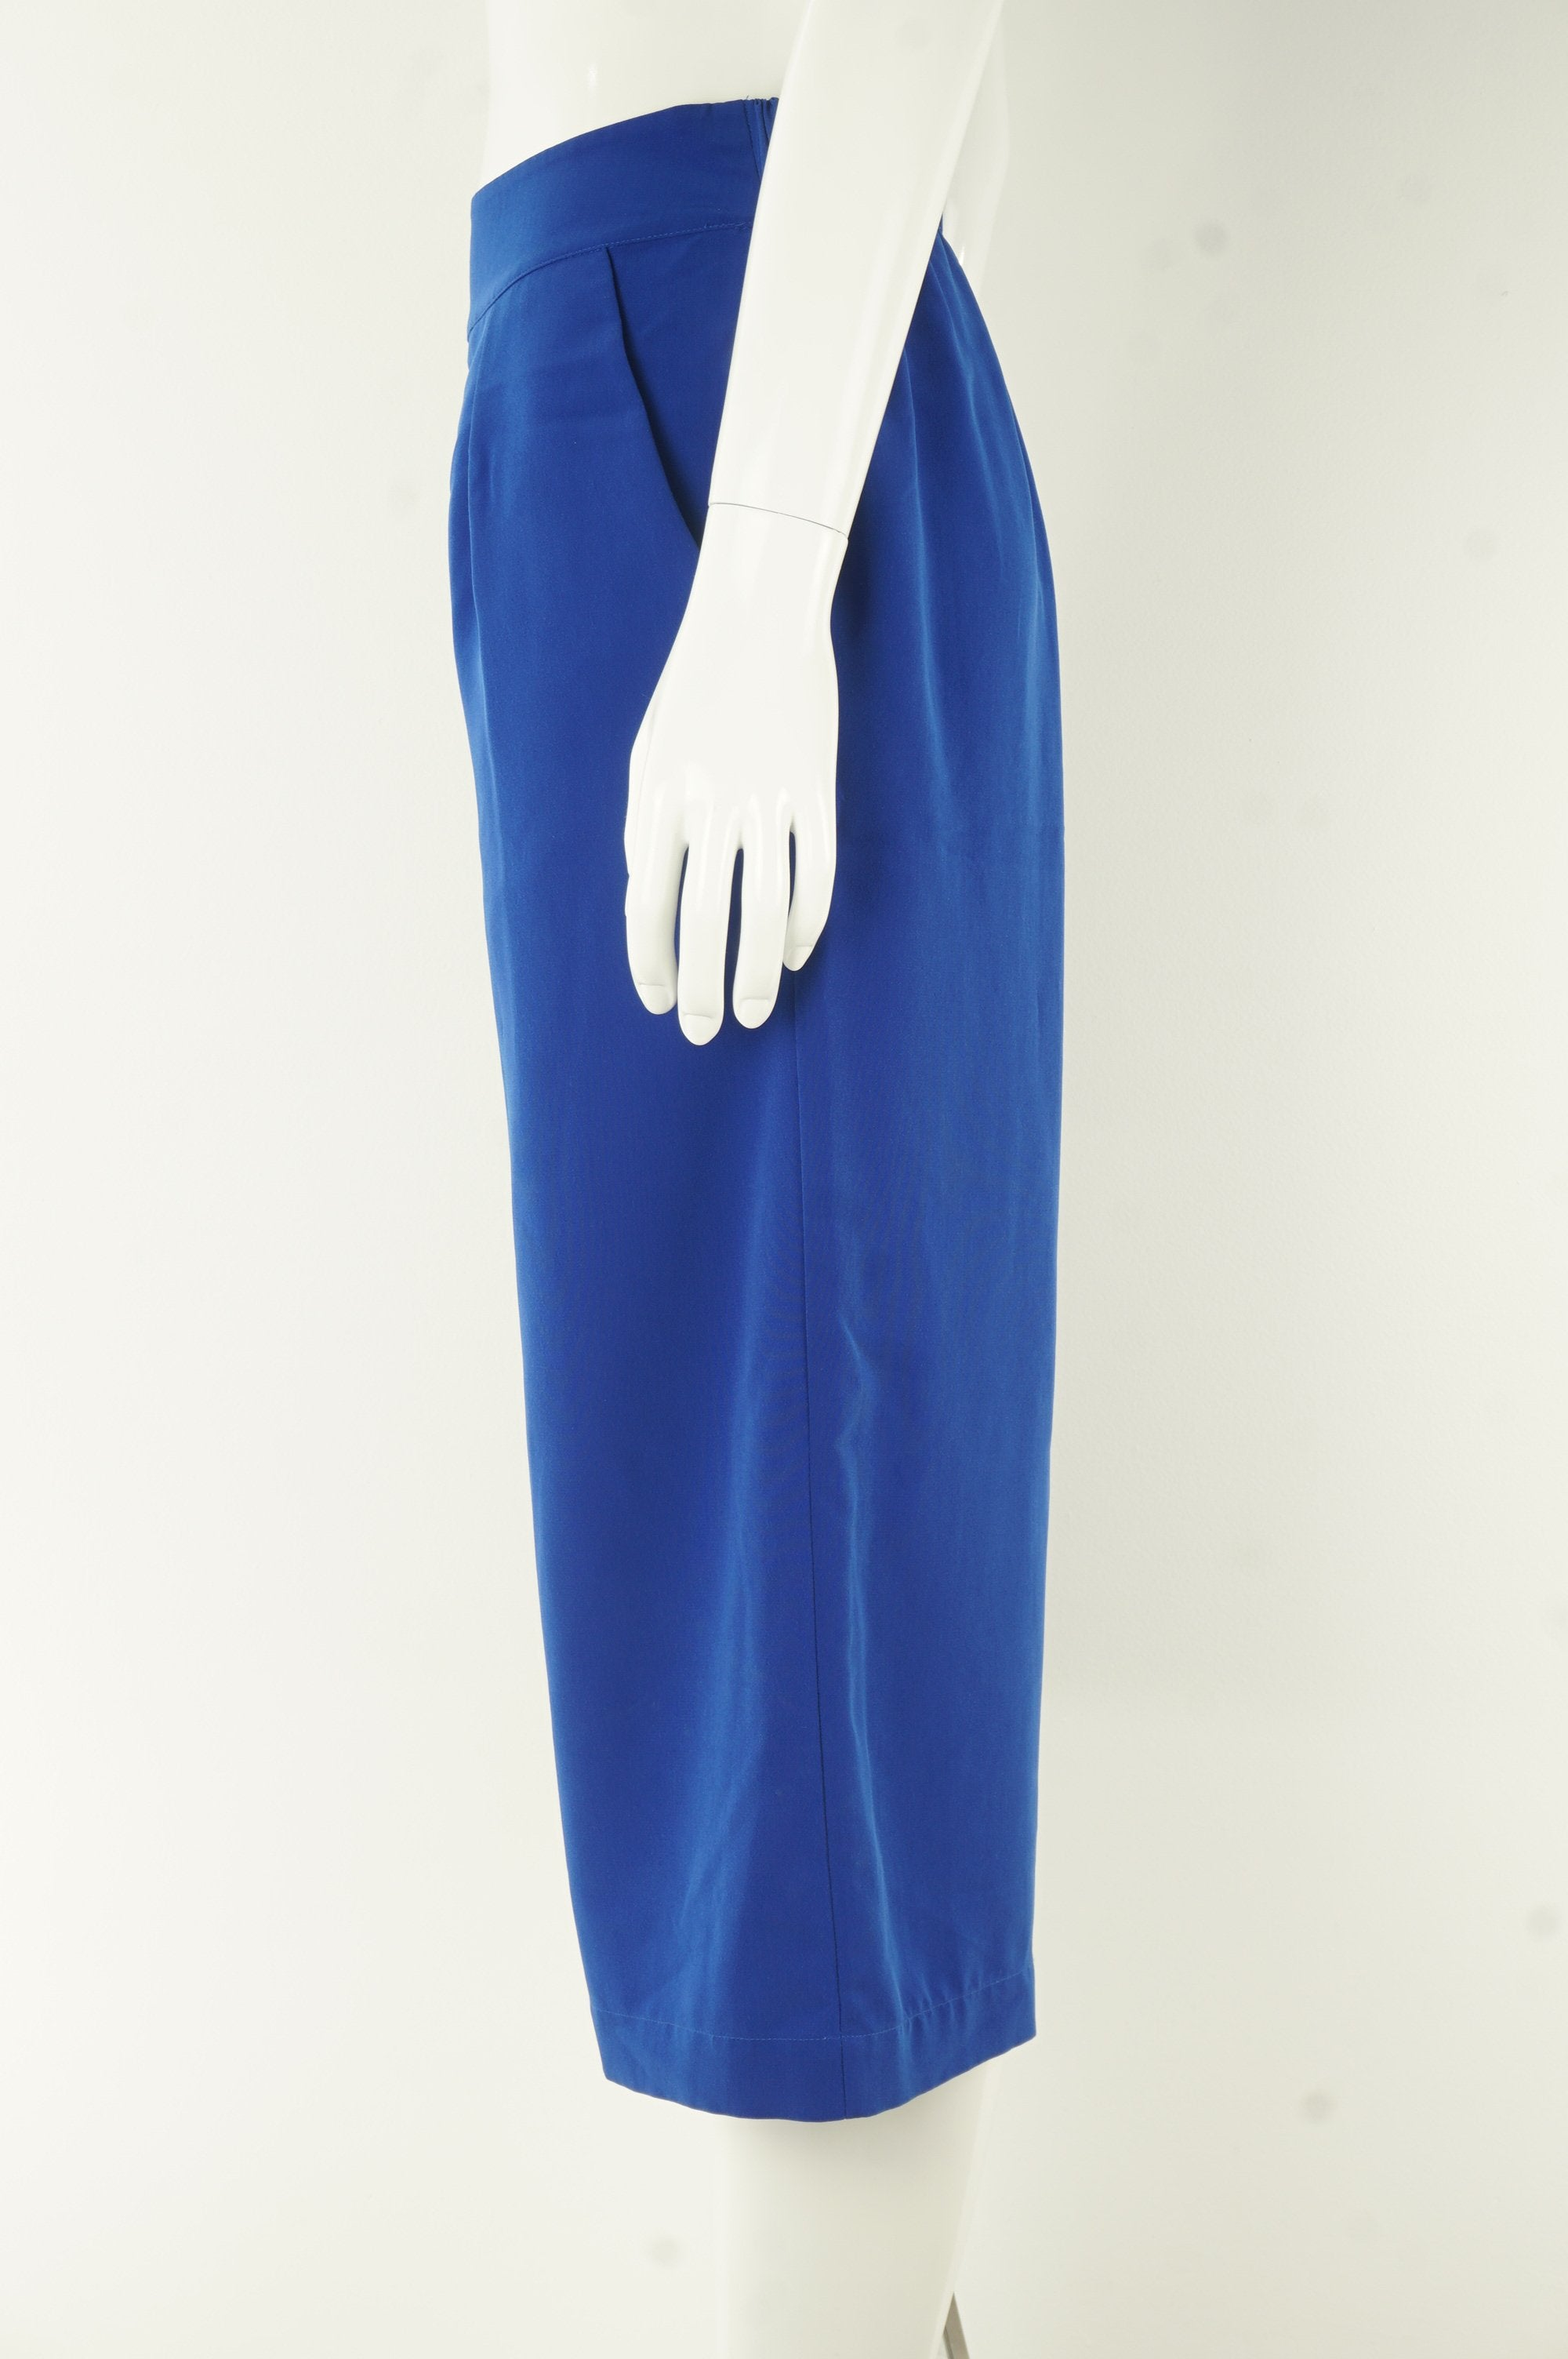 H Halston Cropped Wide Legged Pants, Casual or formal, you call. Comfort is garanteed!, Blue, 100% polyester, women's Pants & Shorts, women's Blue Pants & Shorts, H Halston women's Pants & Shorts, women's cropped wide-legged pants, women's comfortable loose pants